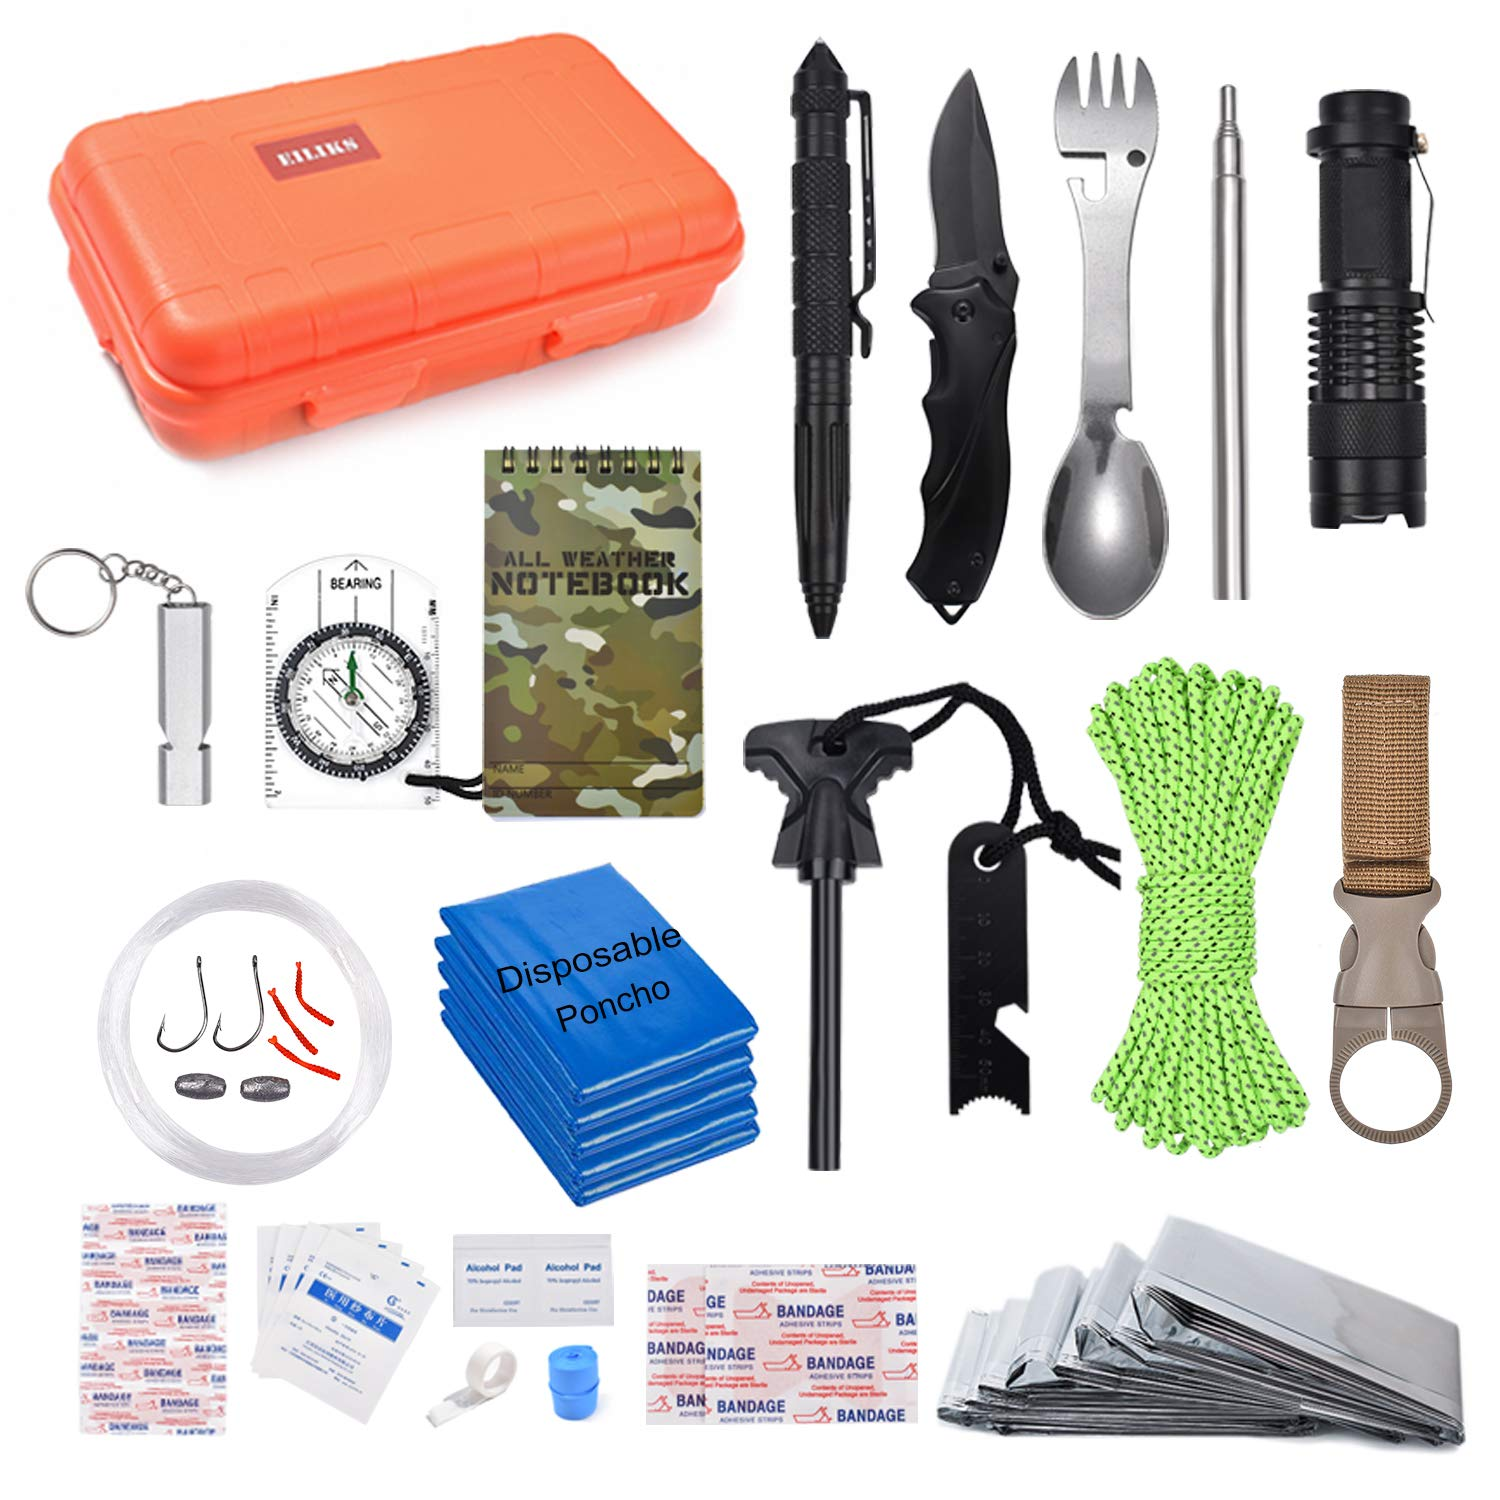 EILIKS Survival Kits 47 in 1 Outdoor Emergency SOS Survival Gear Kits for Car Camping Hiking Trekking Wild Adventure Earthquake Survive Tool for Him Father Husband Men Dad Boyfriend Gift by EILIKS